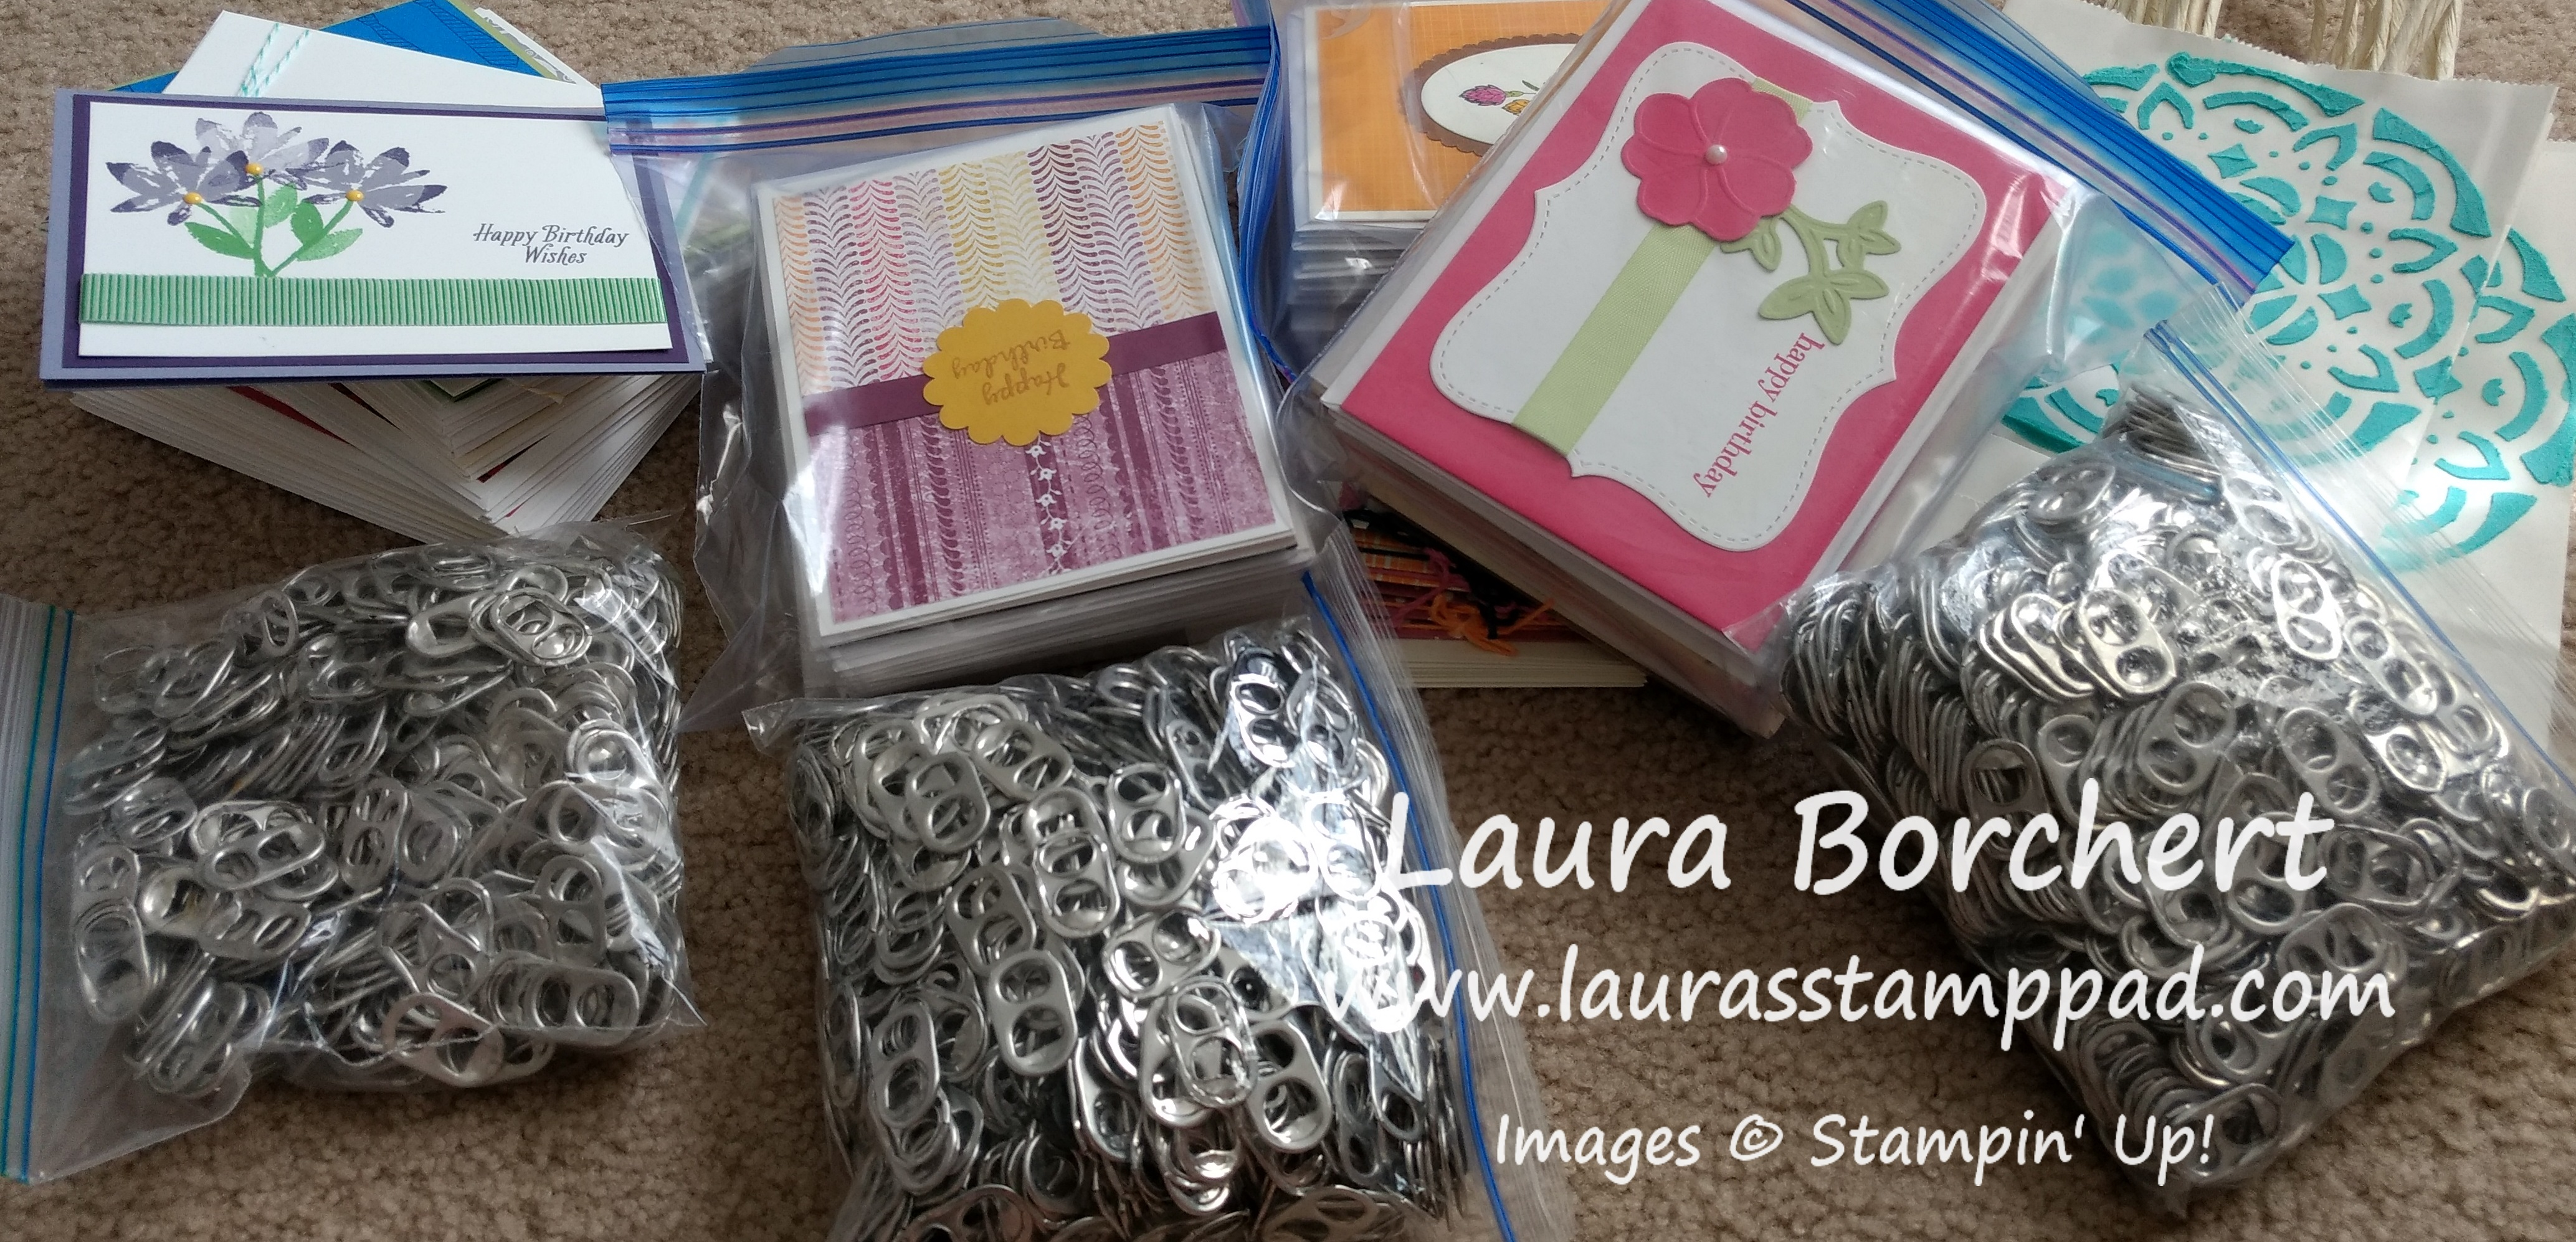 Ronald McDonald House Donation LaurasStampPad